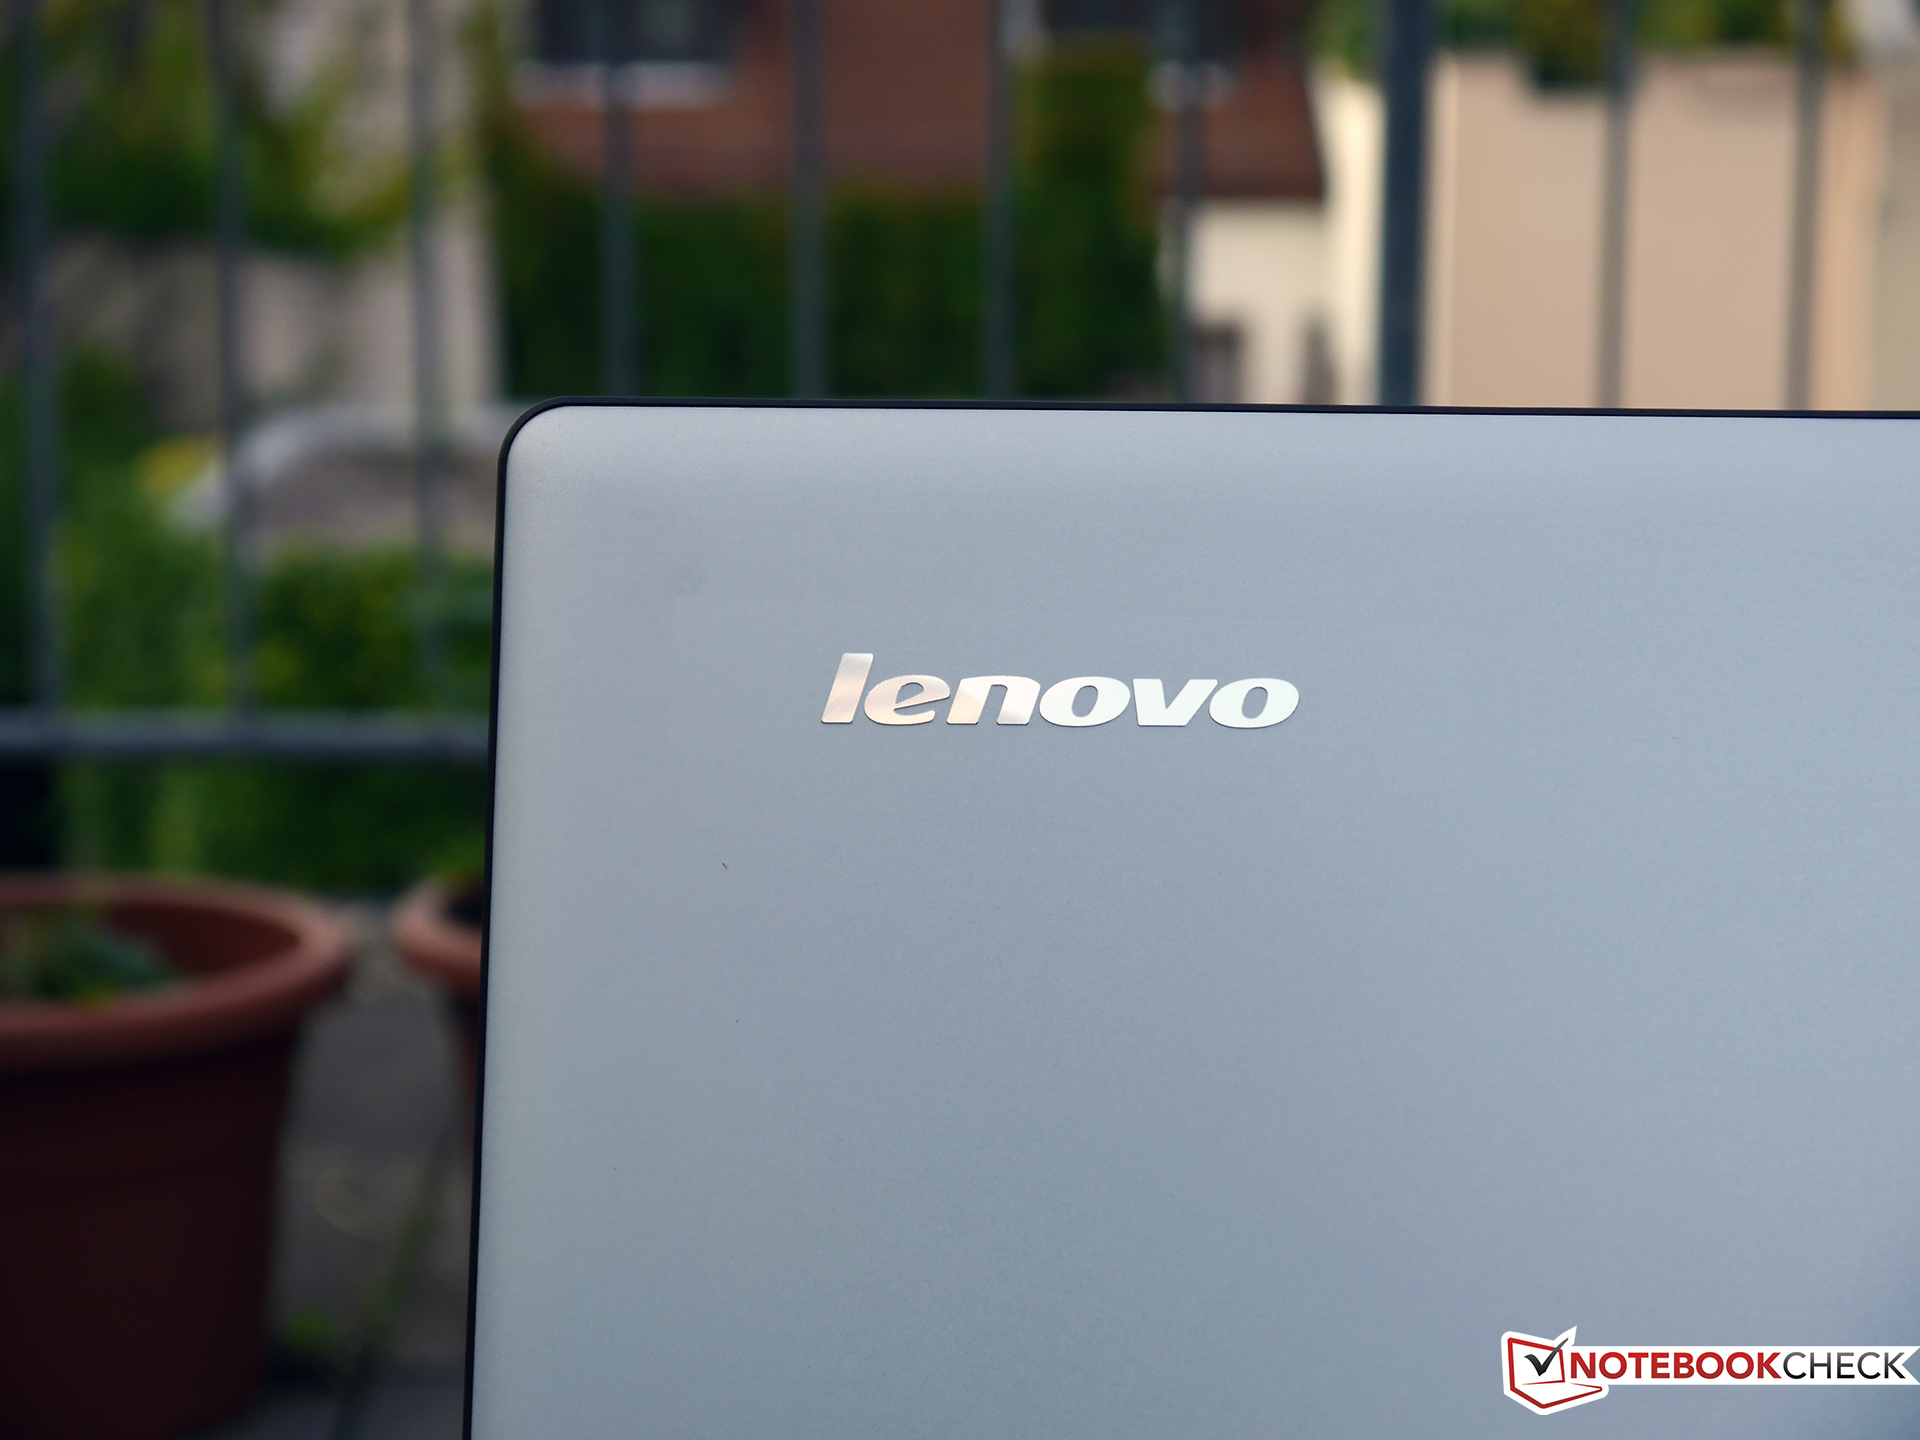 Lenovo E41 25 Driver Windows 10 64 Bit